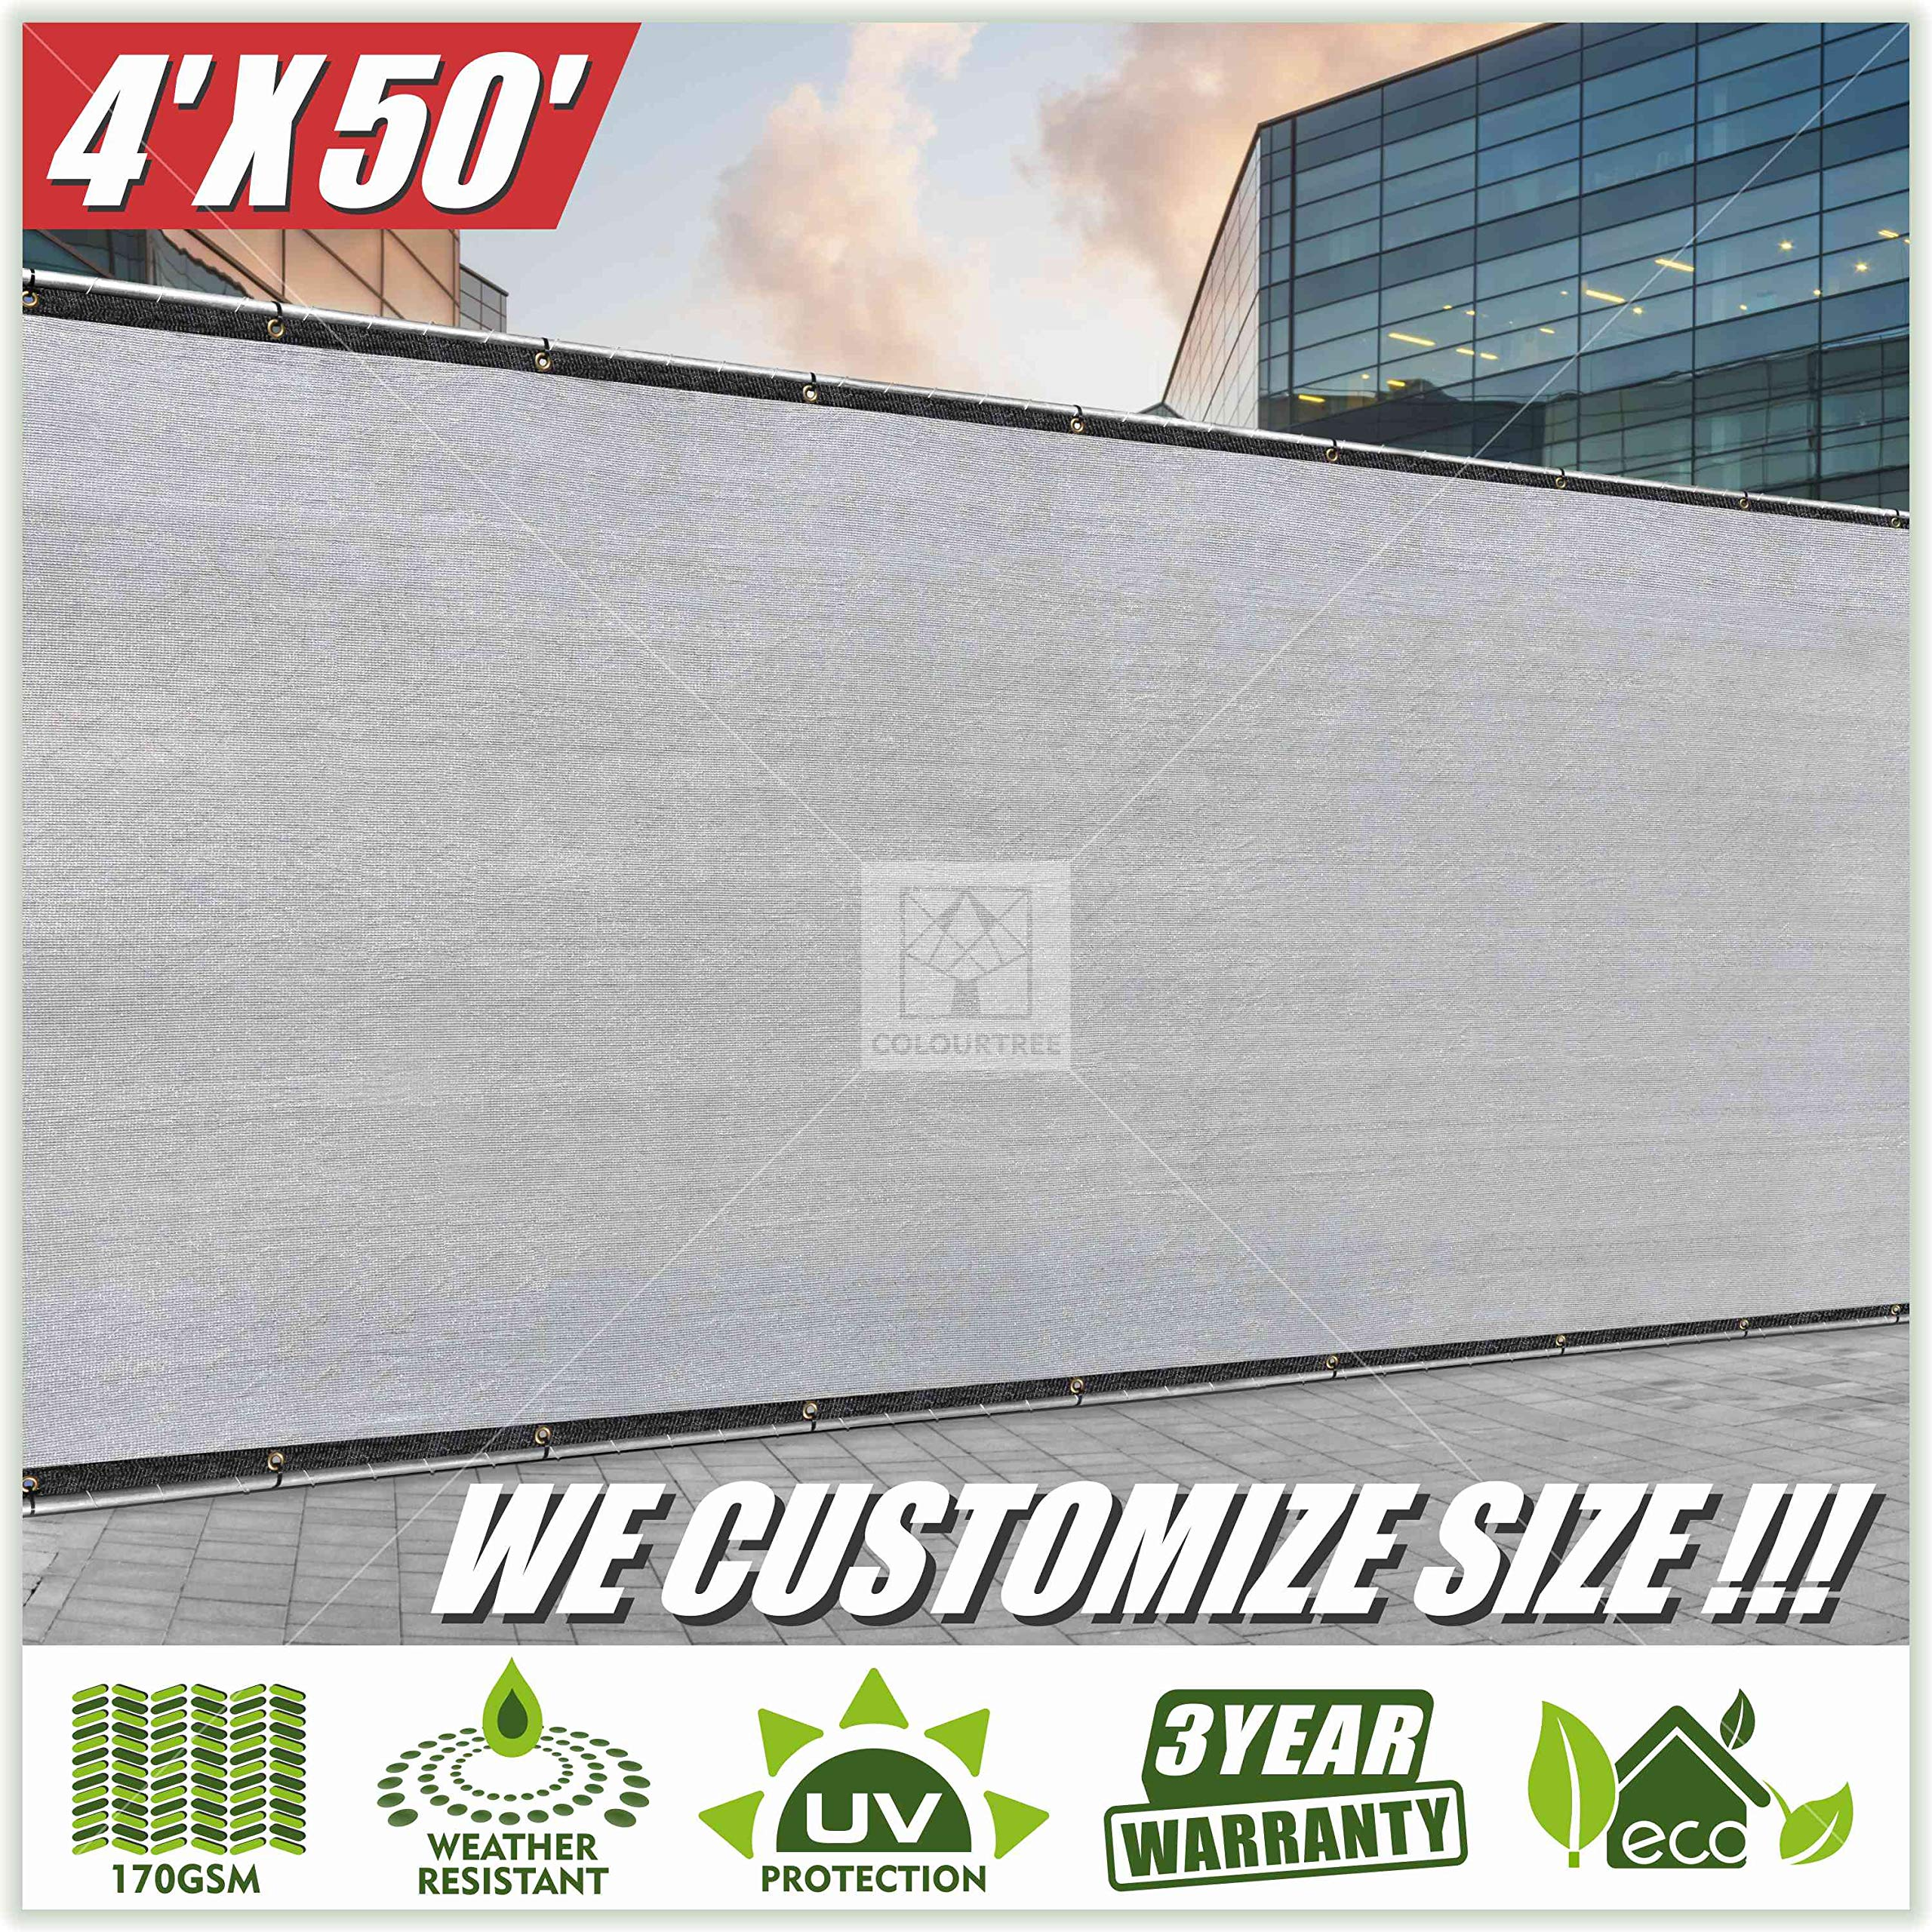 ColourTree 4' x 50' Grey Fence Privacy Screen Windscreen Cover Fabric Shade Tarp Netting Mesh Cloth - Commercial Grade 170 GSM - Heavy Duty - 3 Years Warranty - Custom by ColourTree